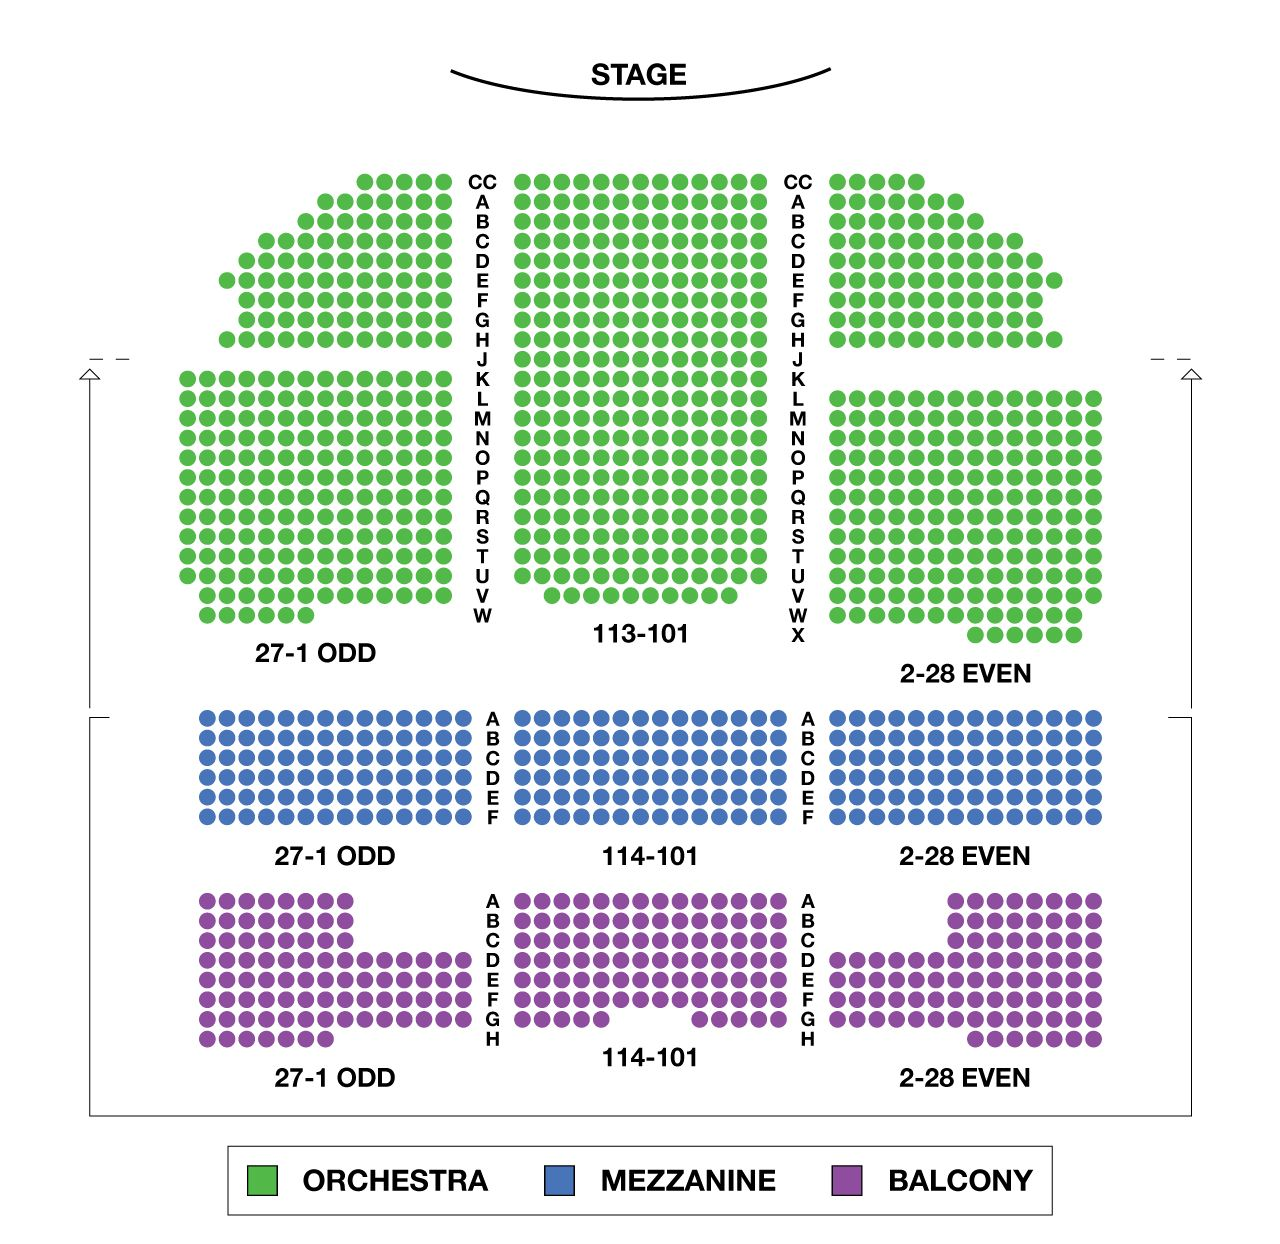 Richard Rodgers Theatre Broadway Seating Chart Large Richard Rodgers Seating Charts Chart